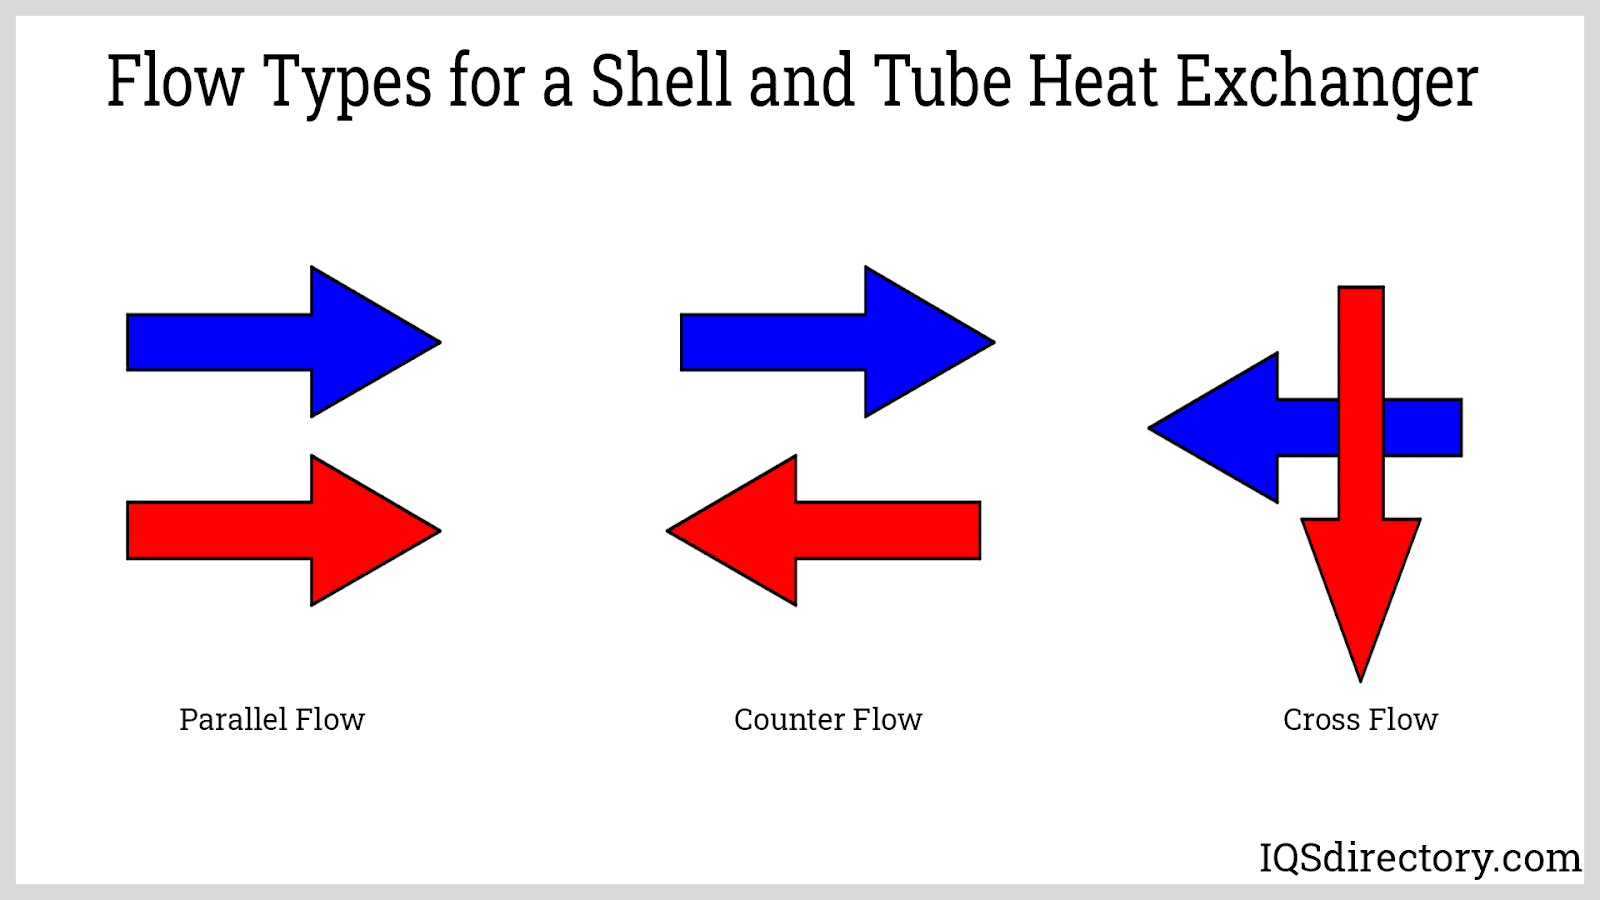 Flow Types for a Shell and Tube Heat Exchanger